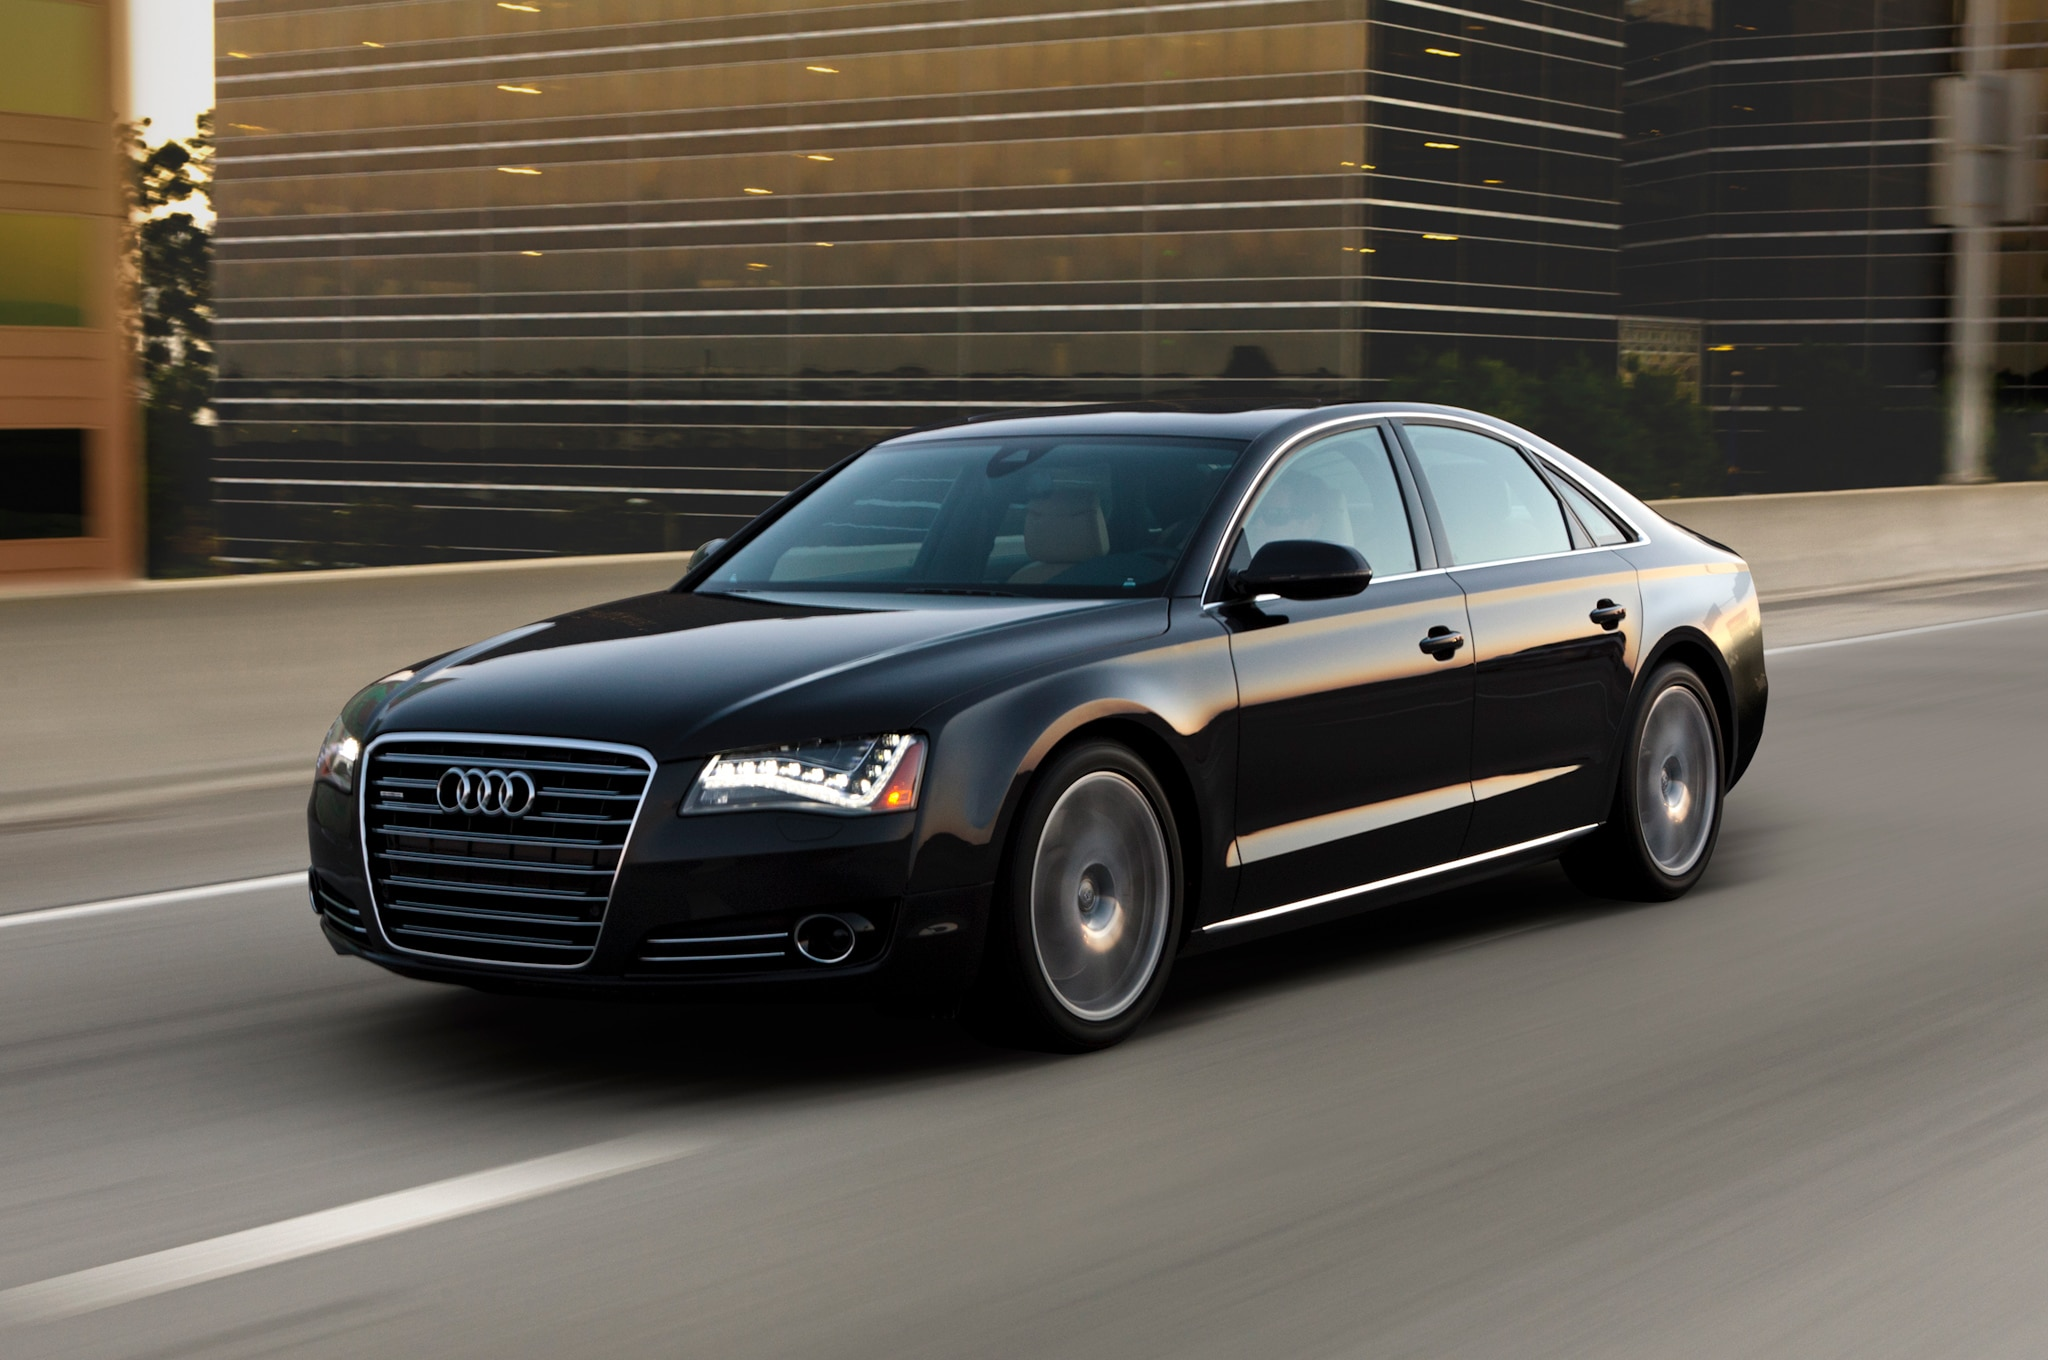 2013 Audi A8 Front Three Quarter Motion1